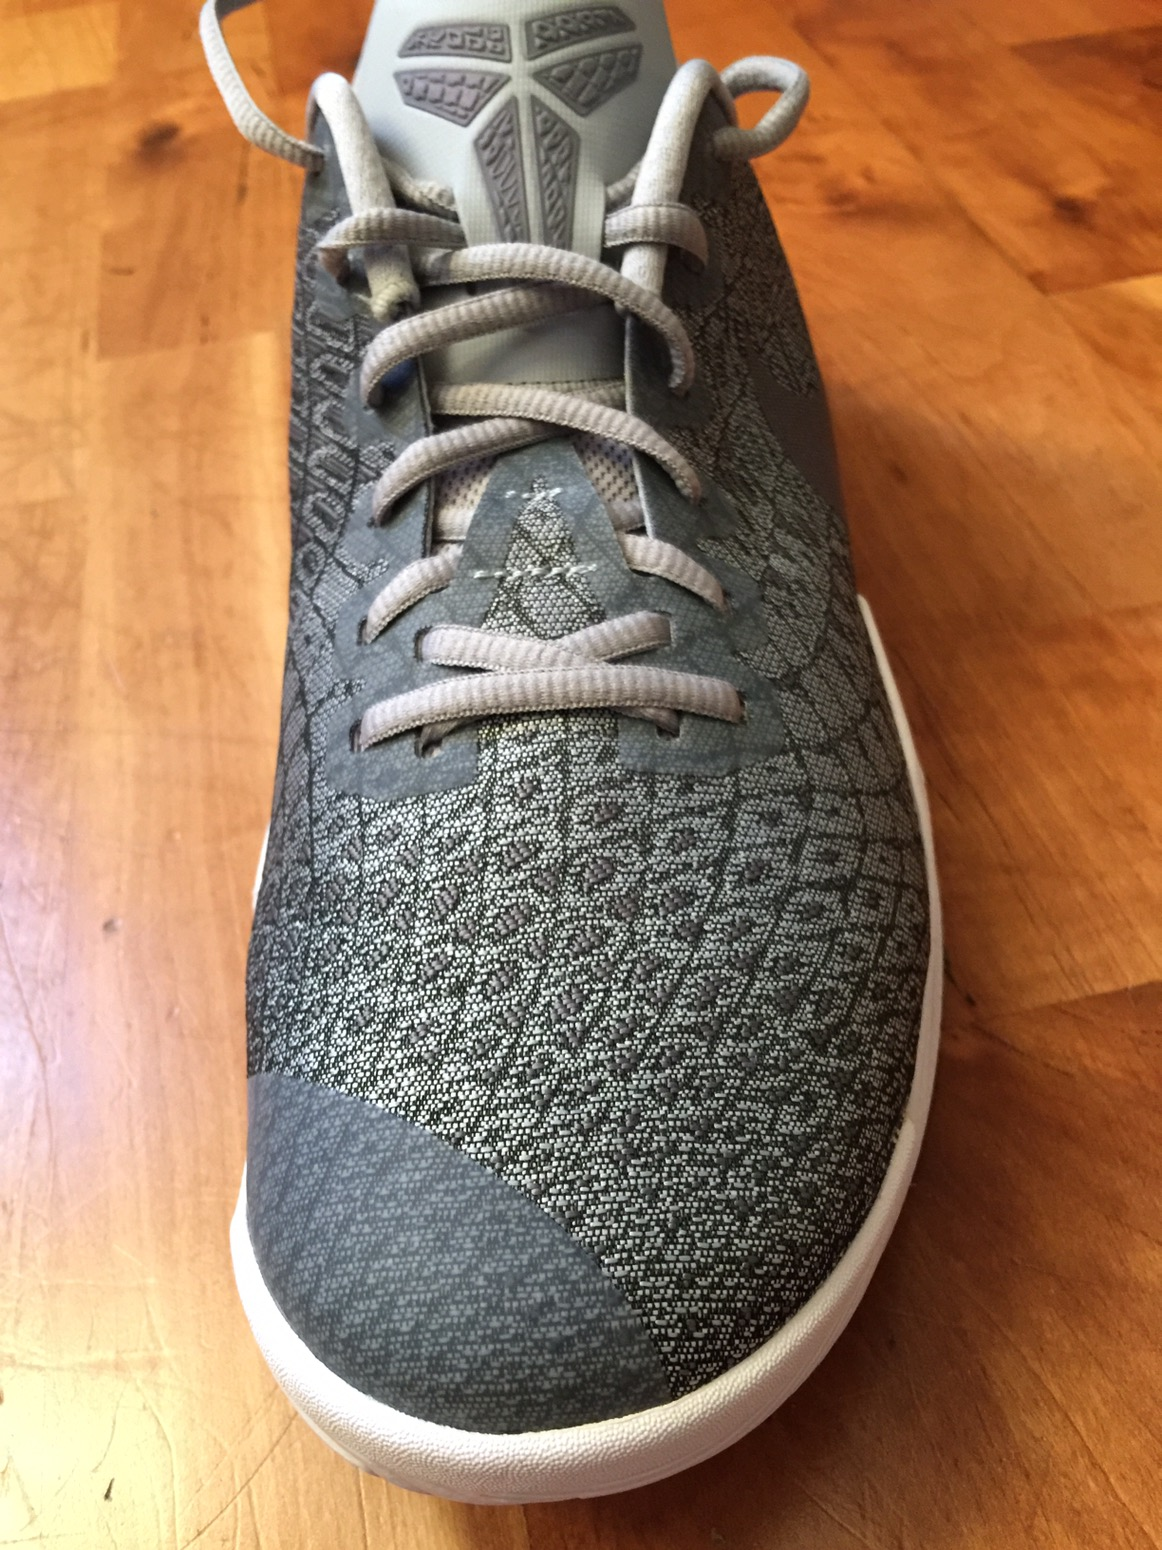 265e27507091 The toe box and pretty much the front third of the shoe is reinforced with  a TPU or soft synthetic. Minimal popping if any. Nike states it has TPU  yarn in ...